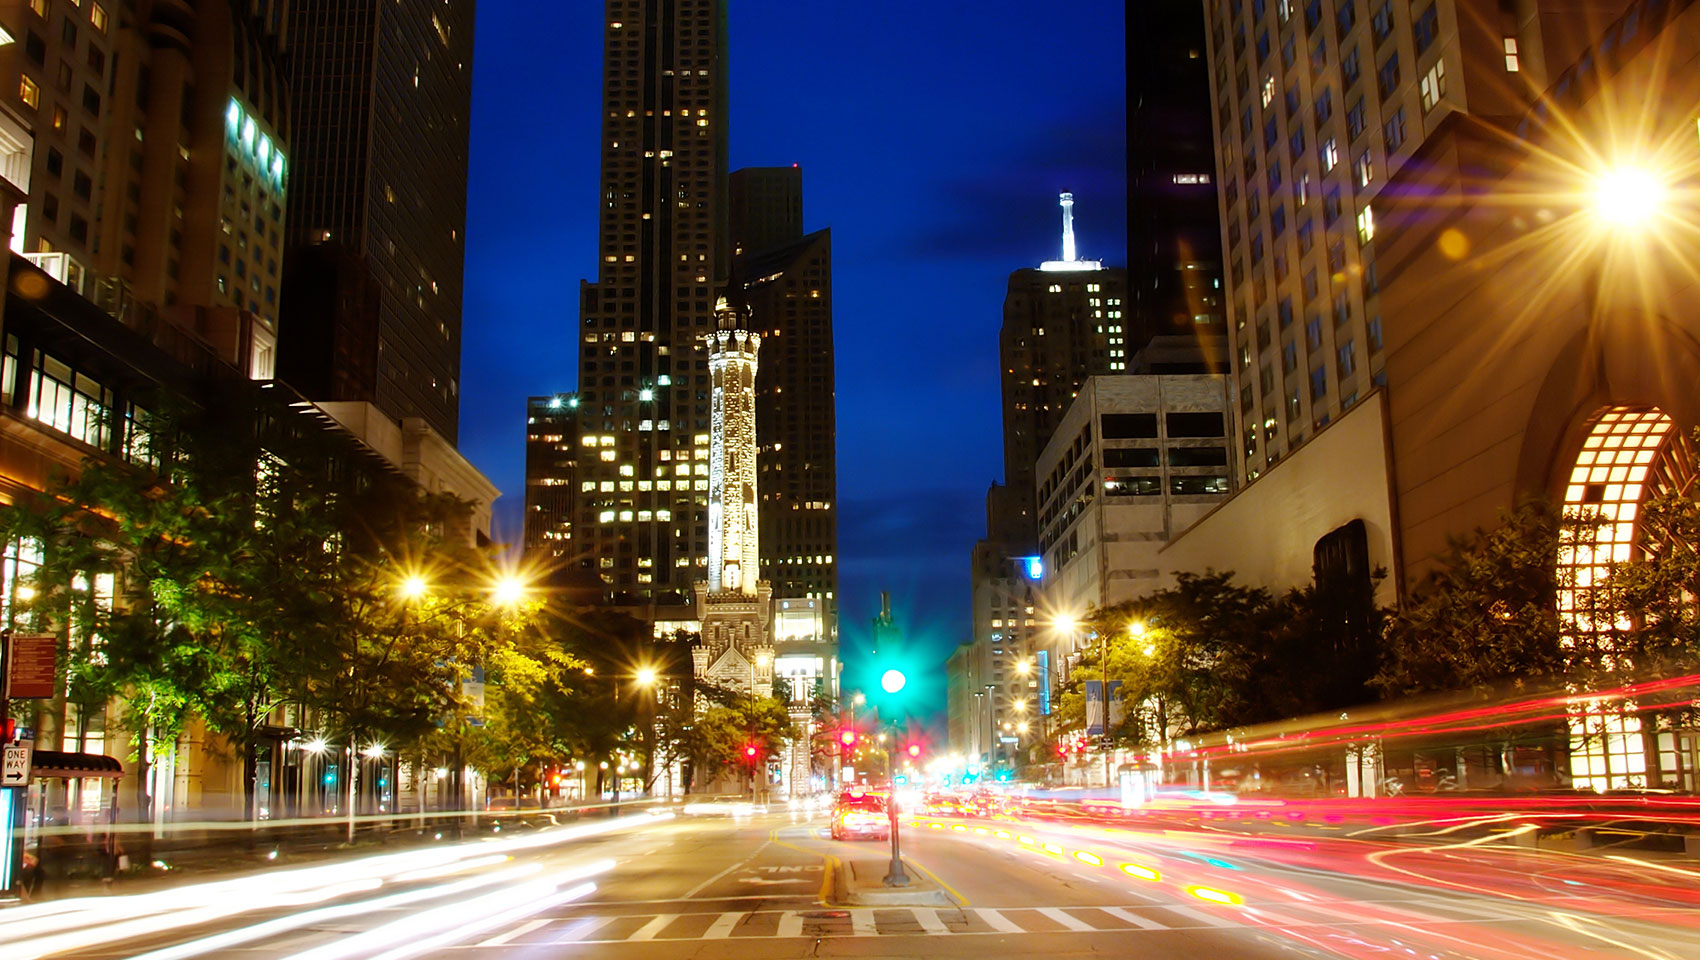 Chicago Michigan ave, cars passing, night time